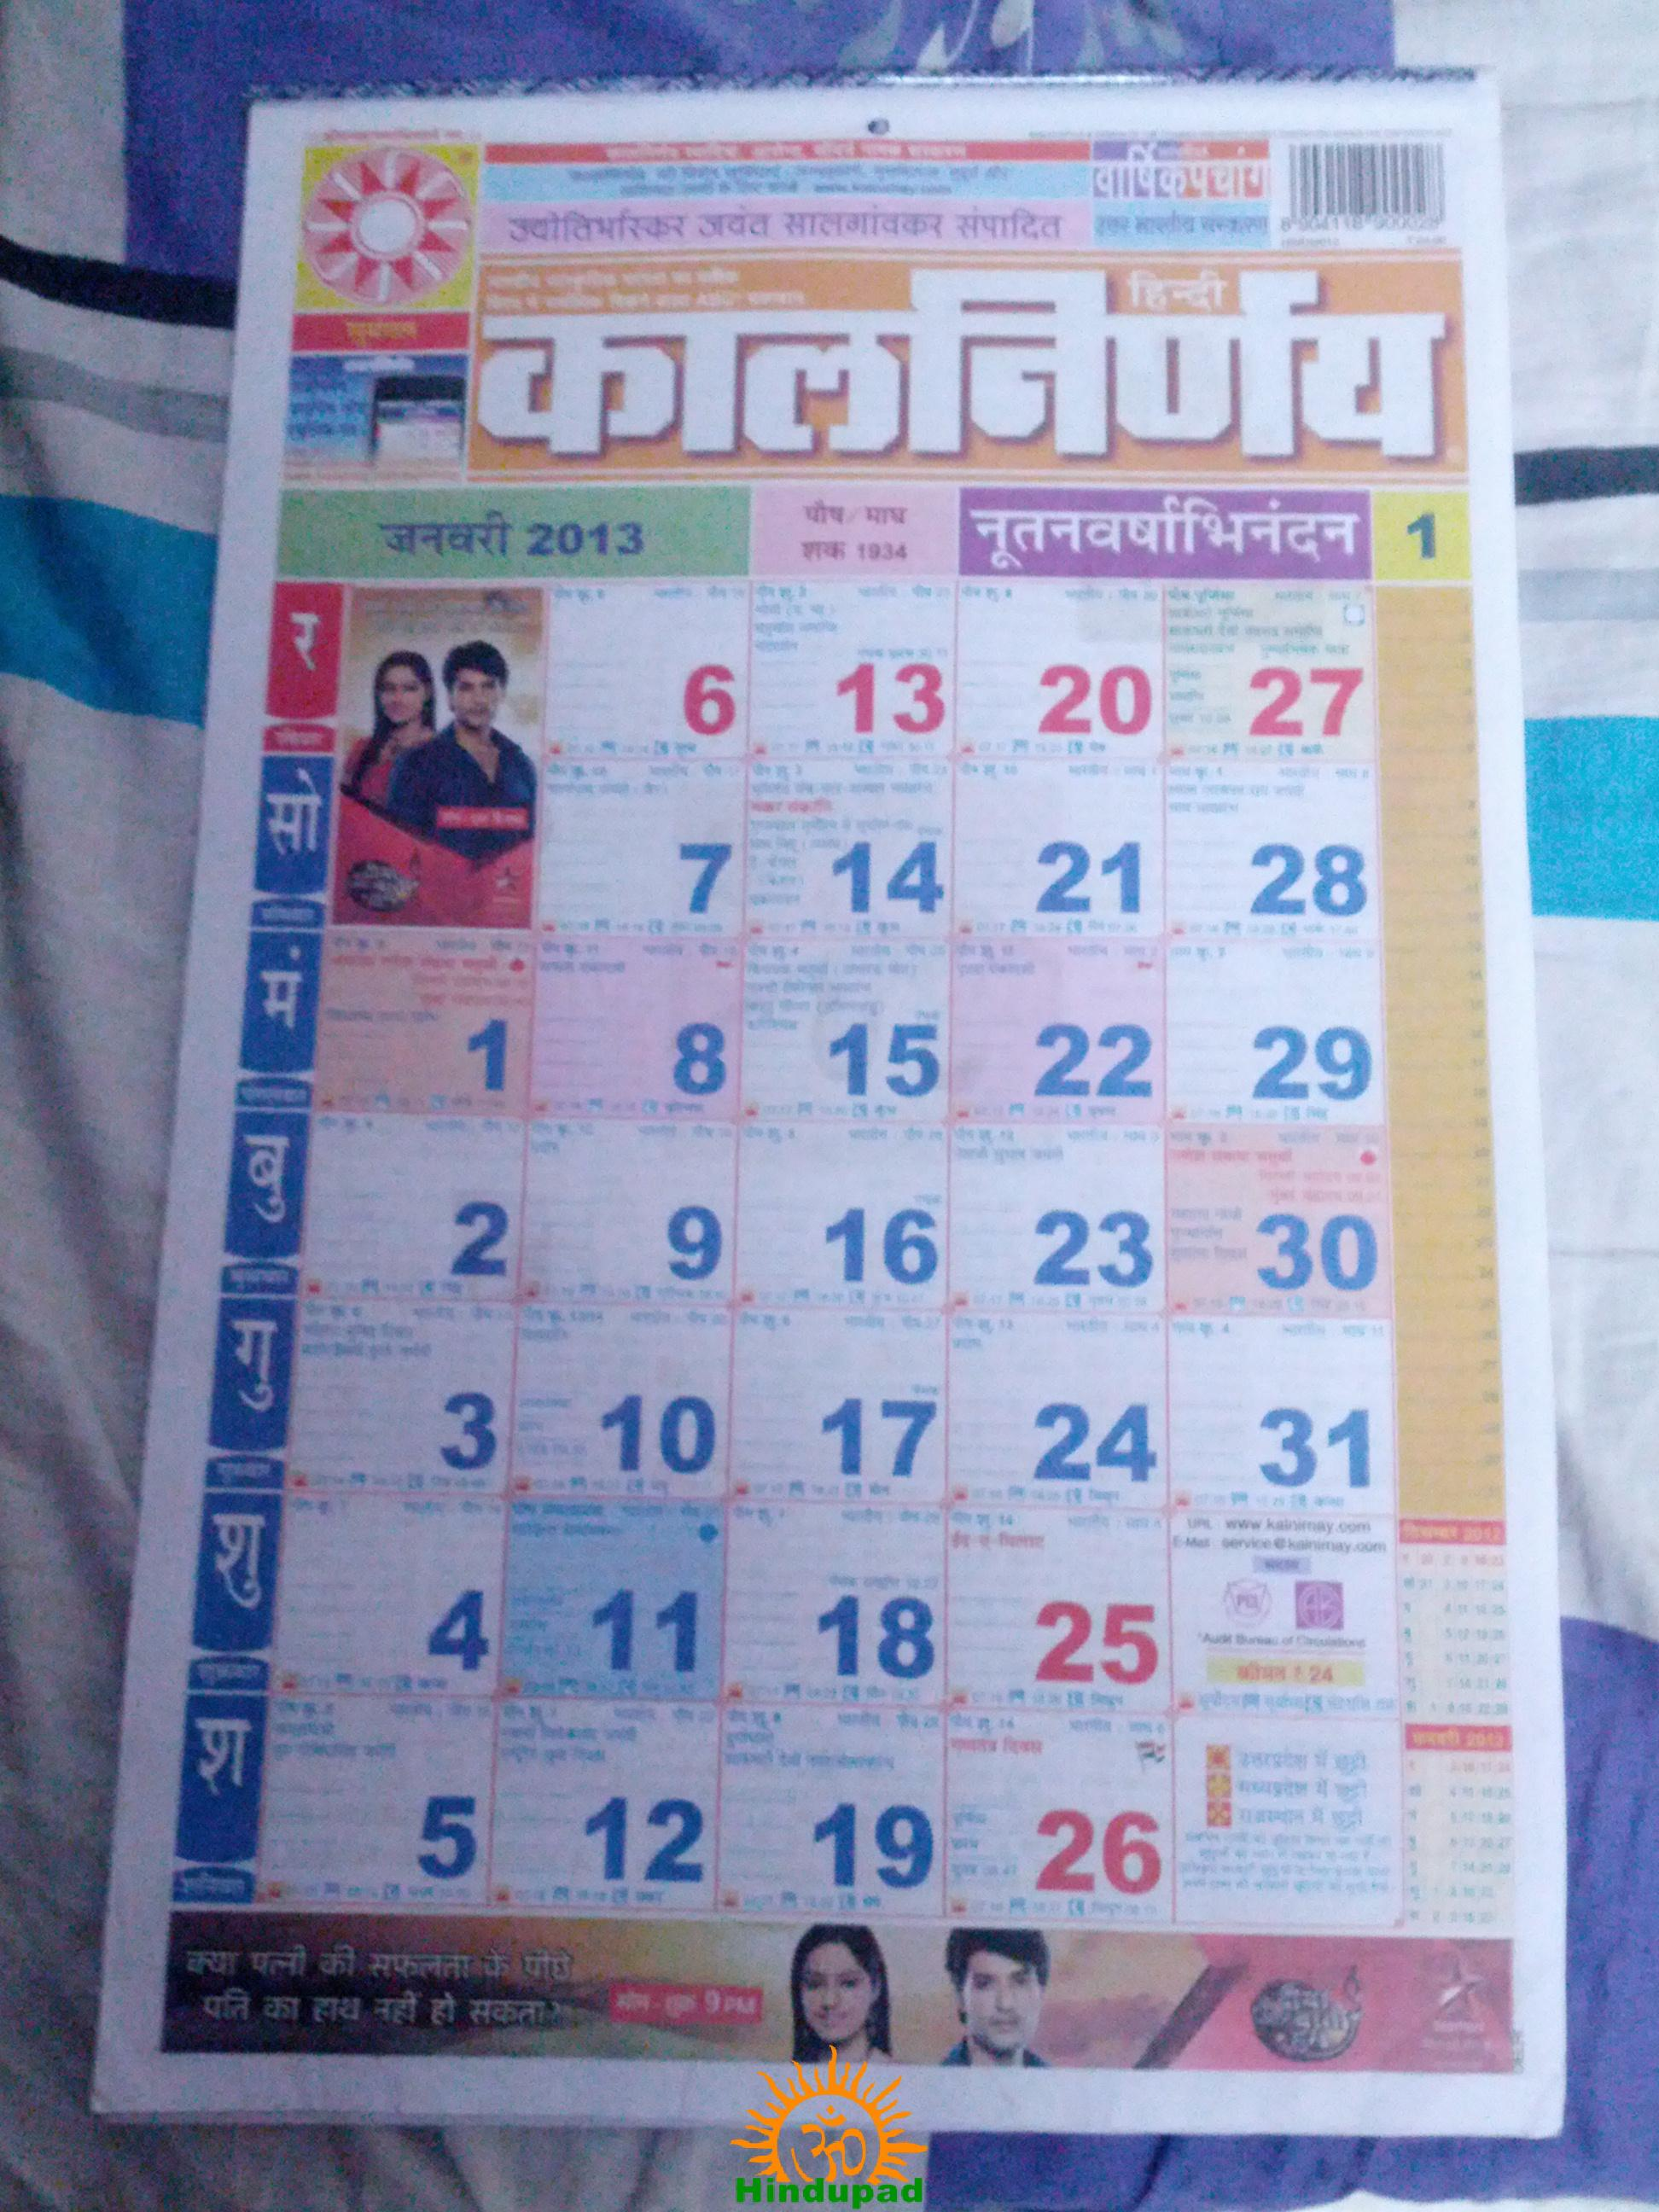 Hindi Kalnirnay is a Hindu calendar cum Panchang published in Hindi by